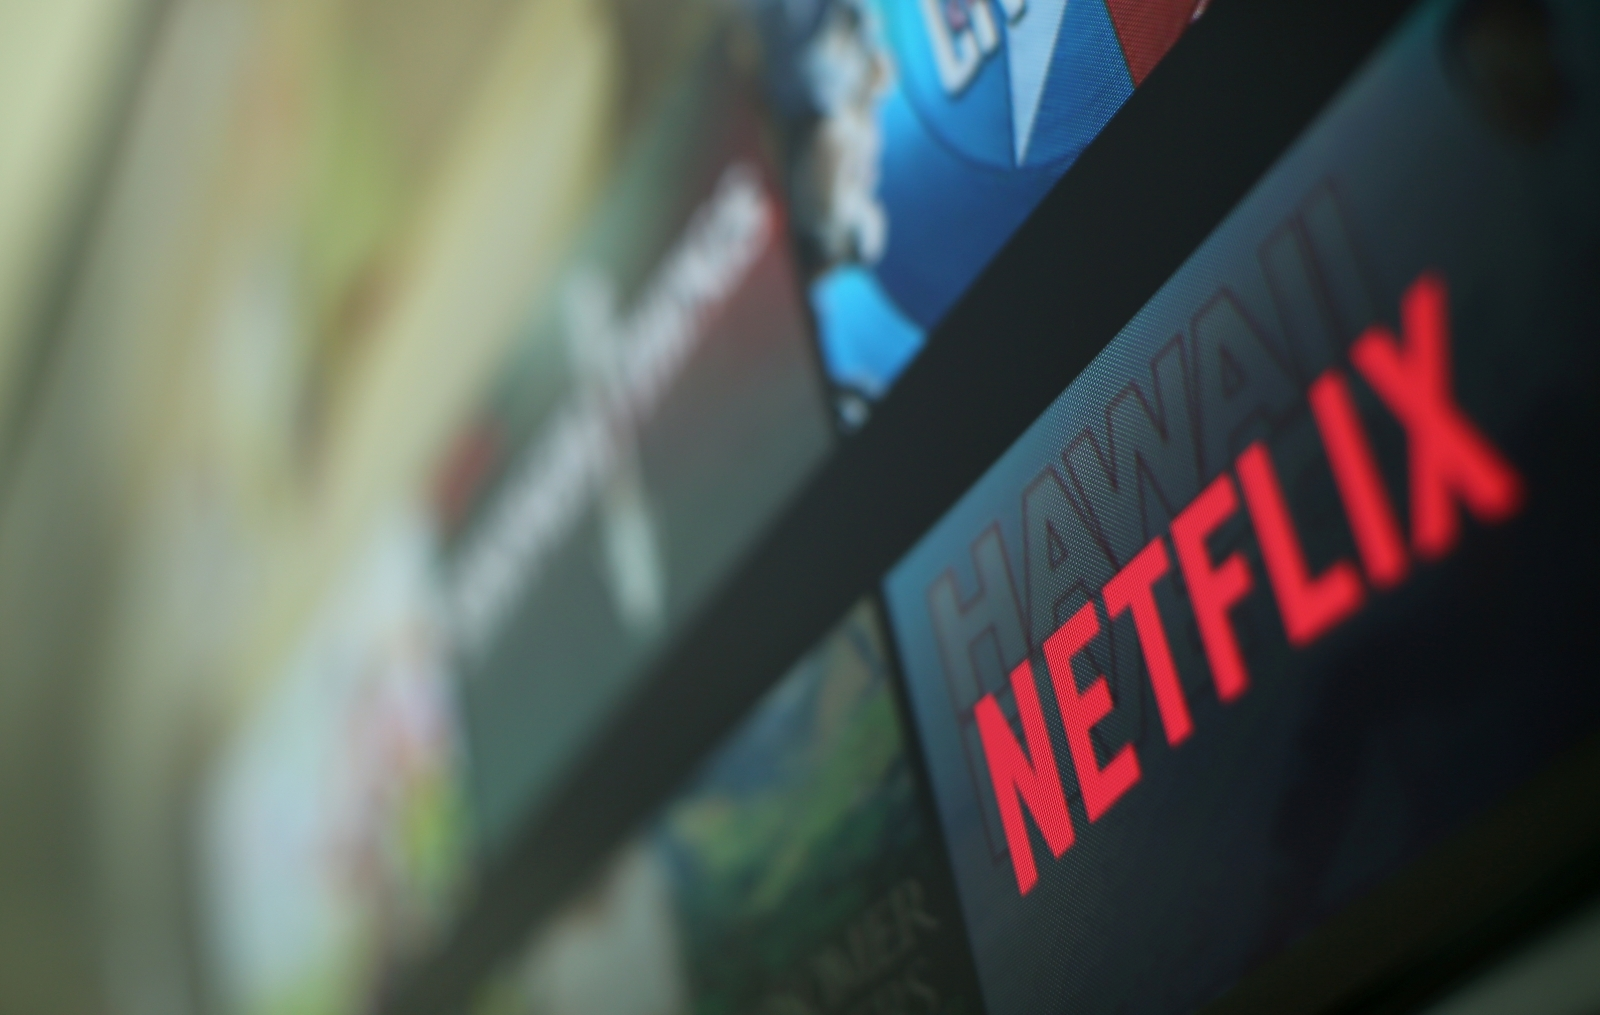 Binge-watching TV may cut sleep quality, up insomnia risk